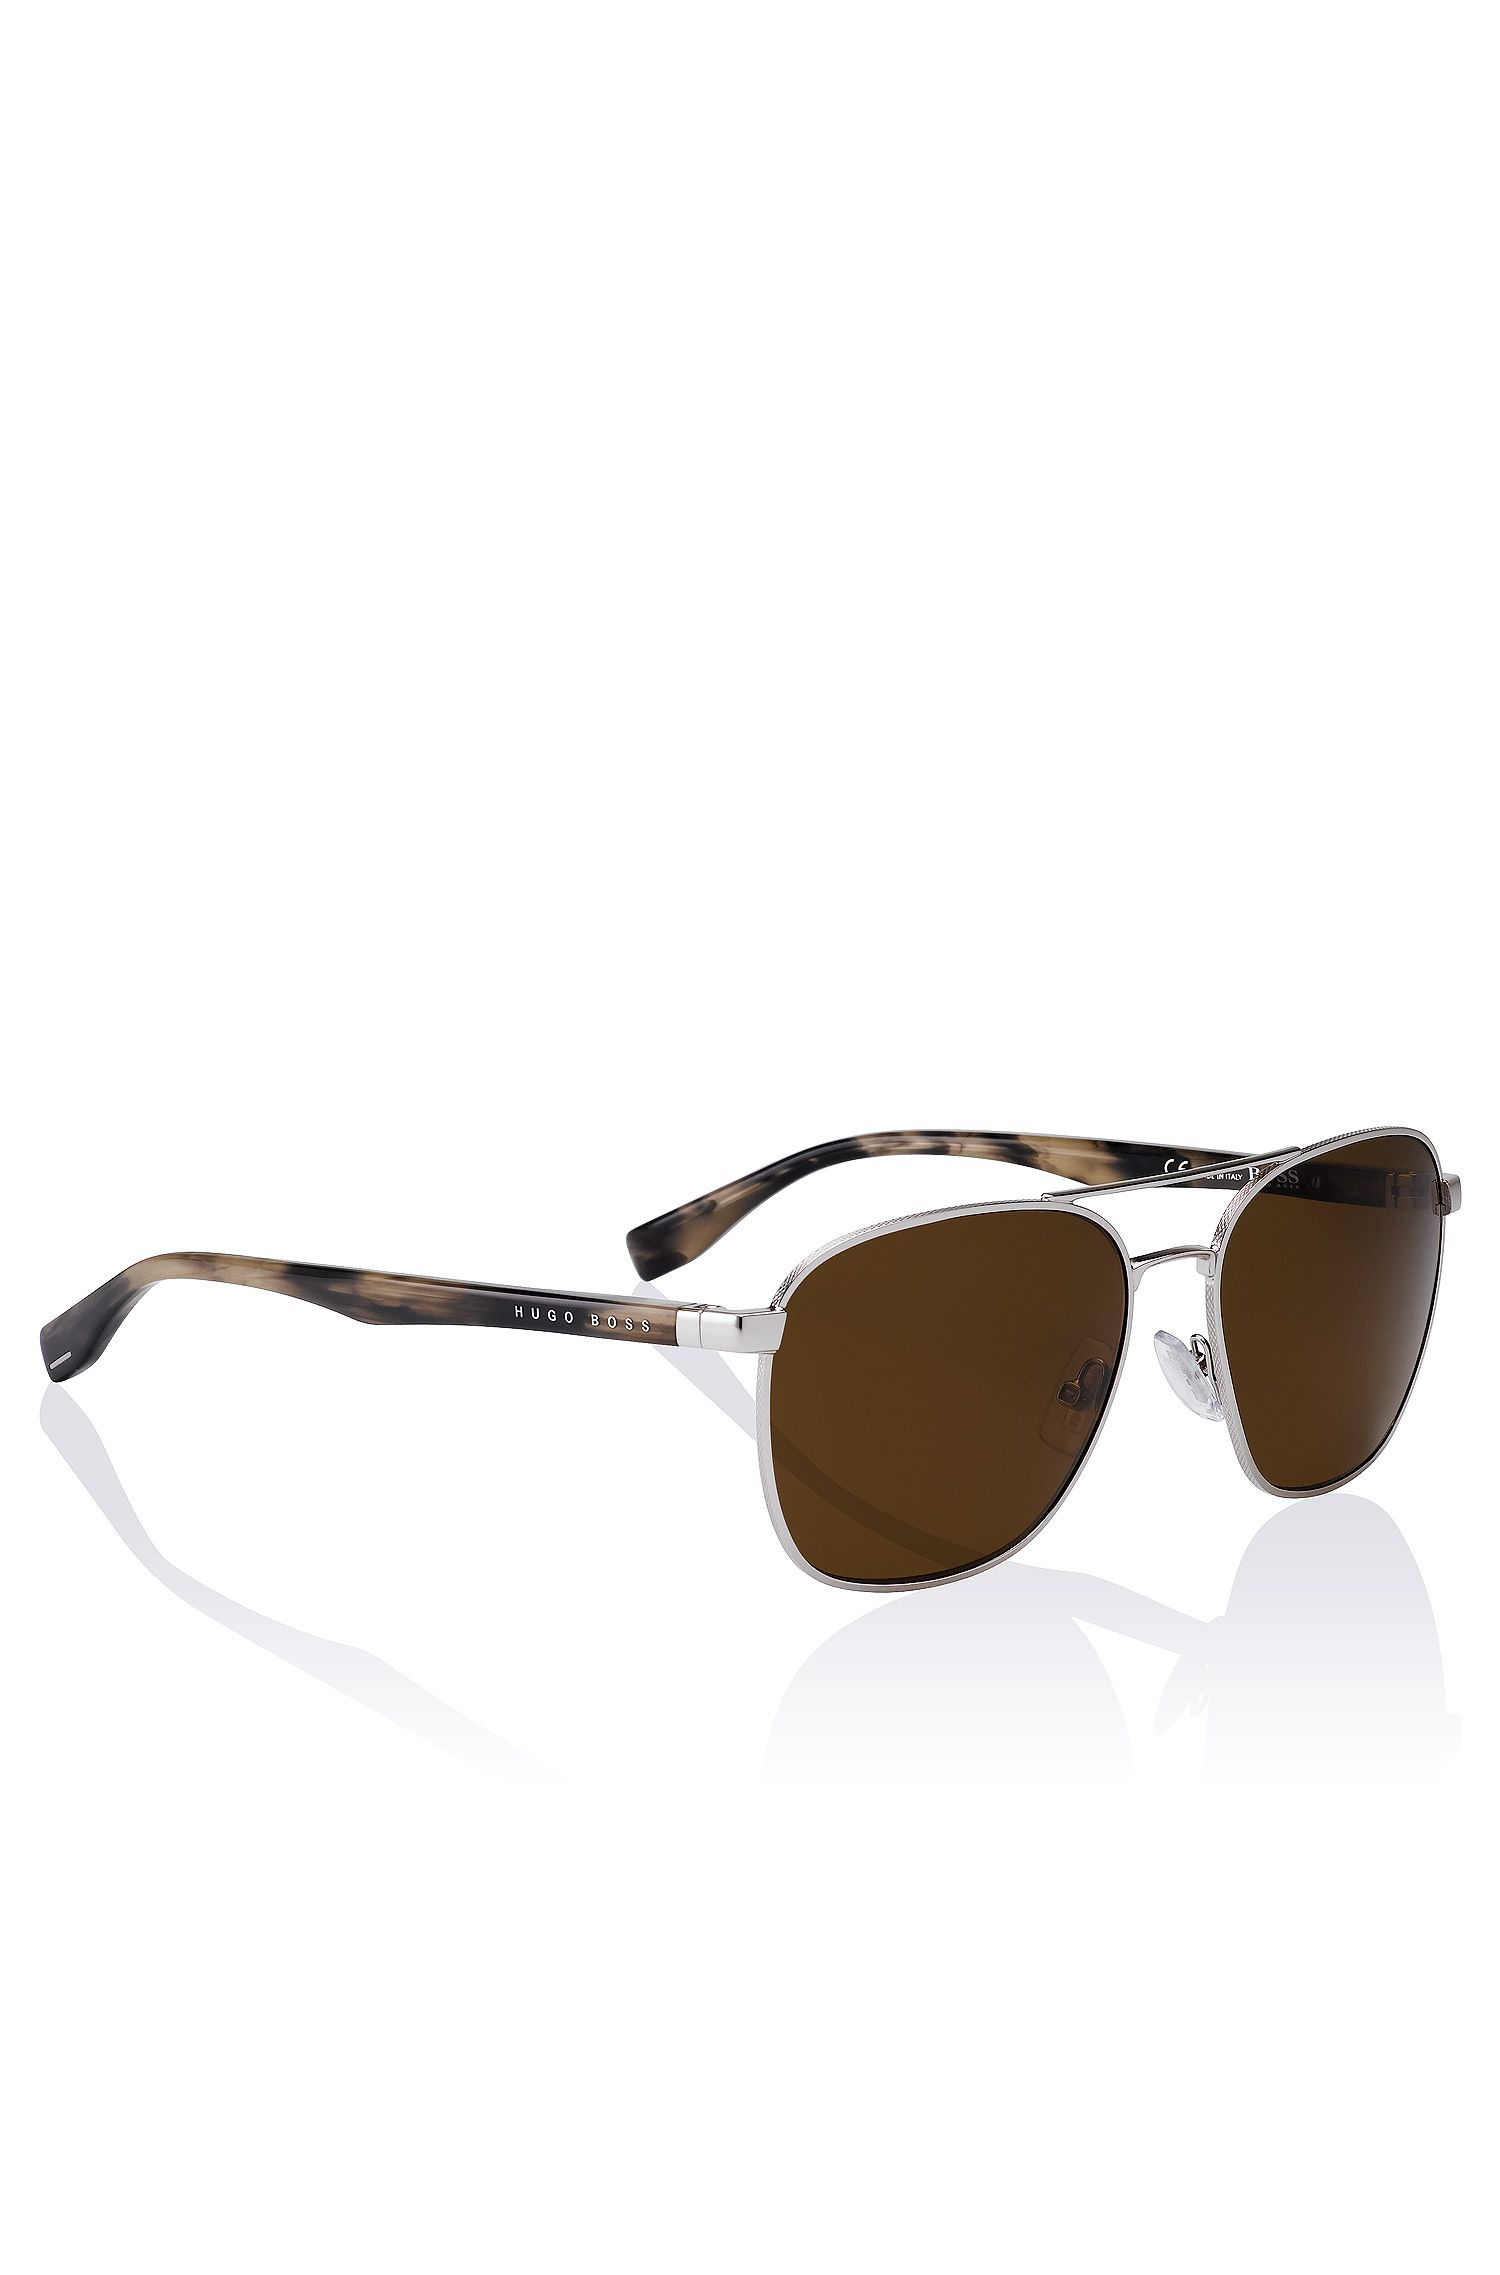 Aviator sunglasses 'BOSS 0701/S', Assorted-Pre-Pack